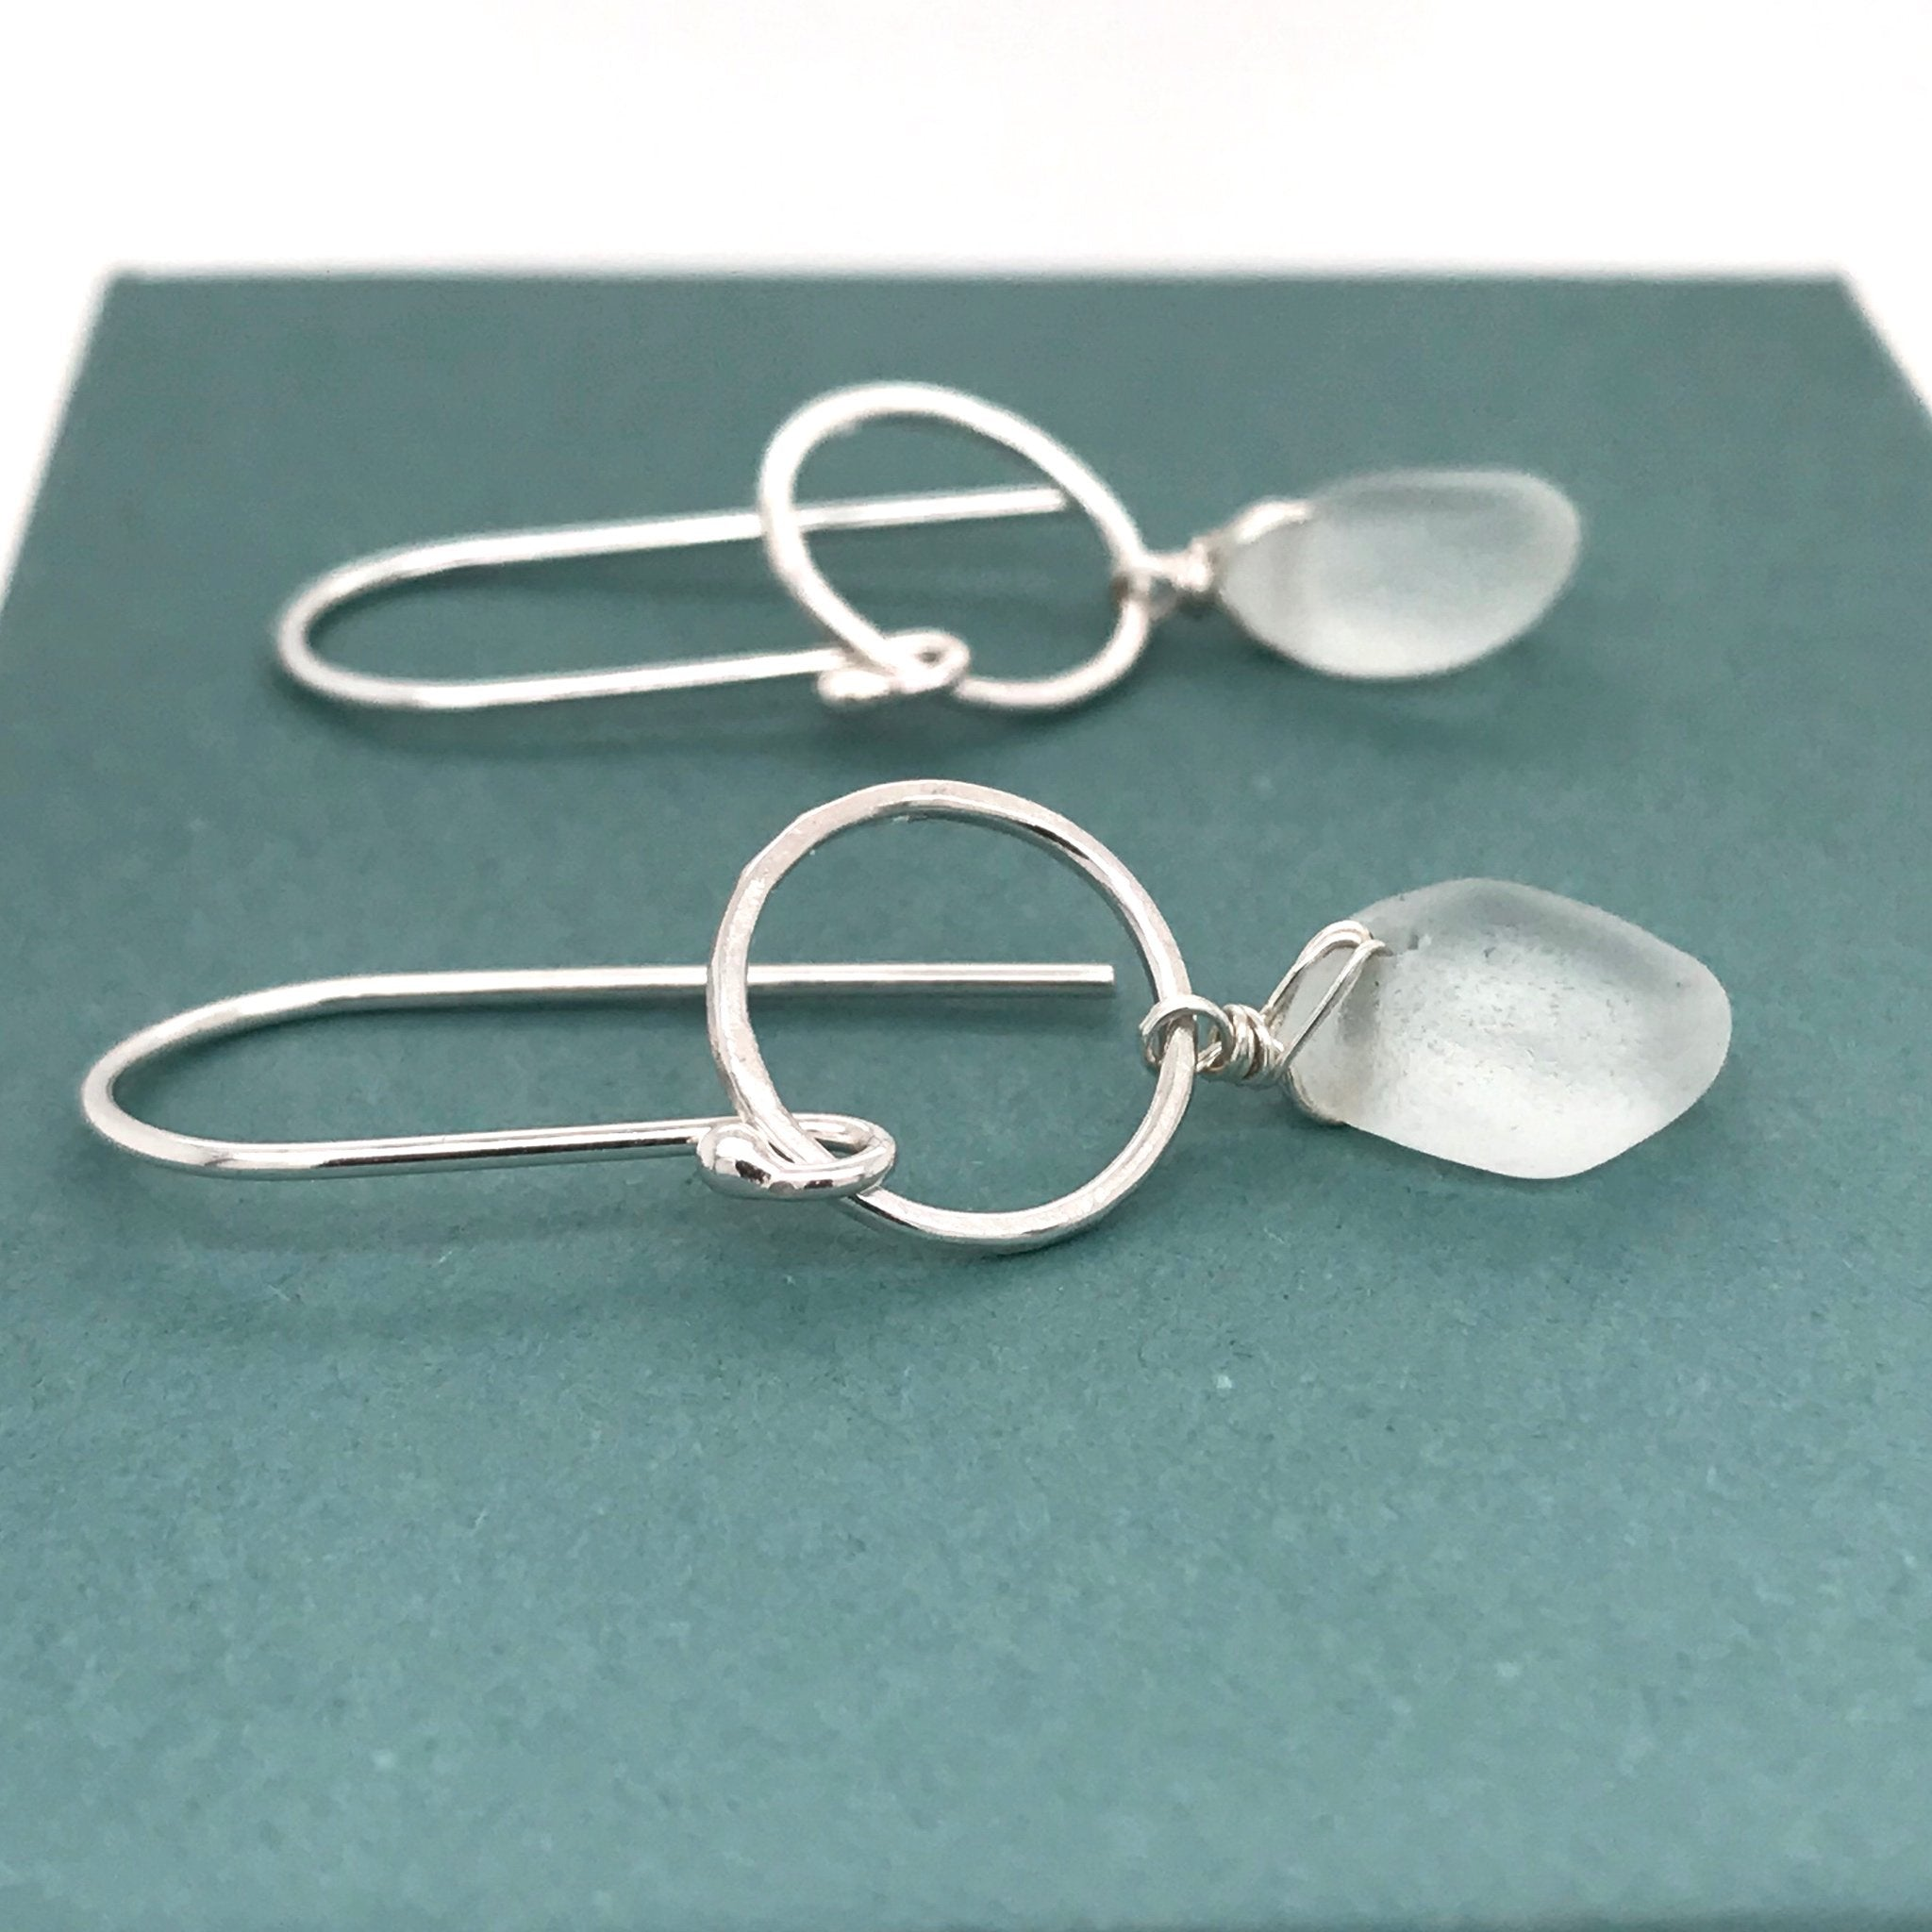 sterling silver earrings with clear seaglass circle design kriket broadhurst jewellery